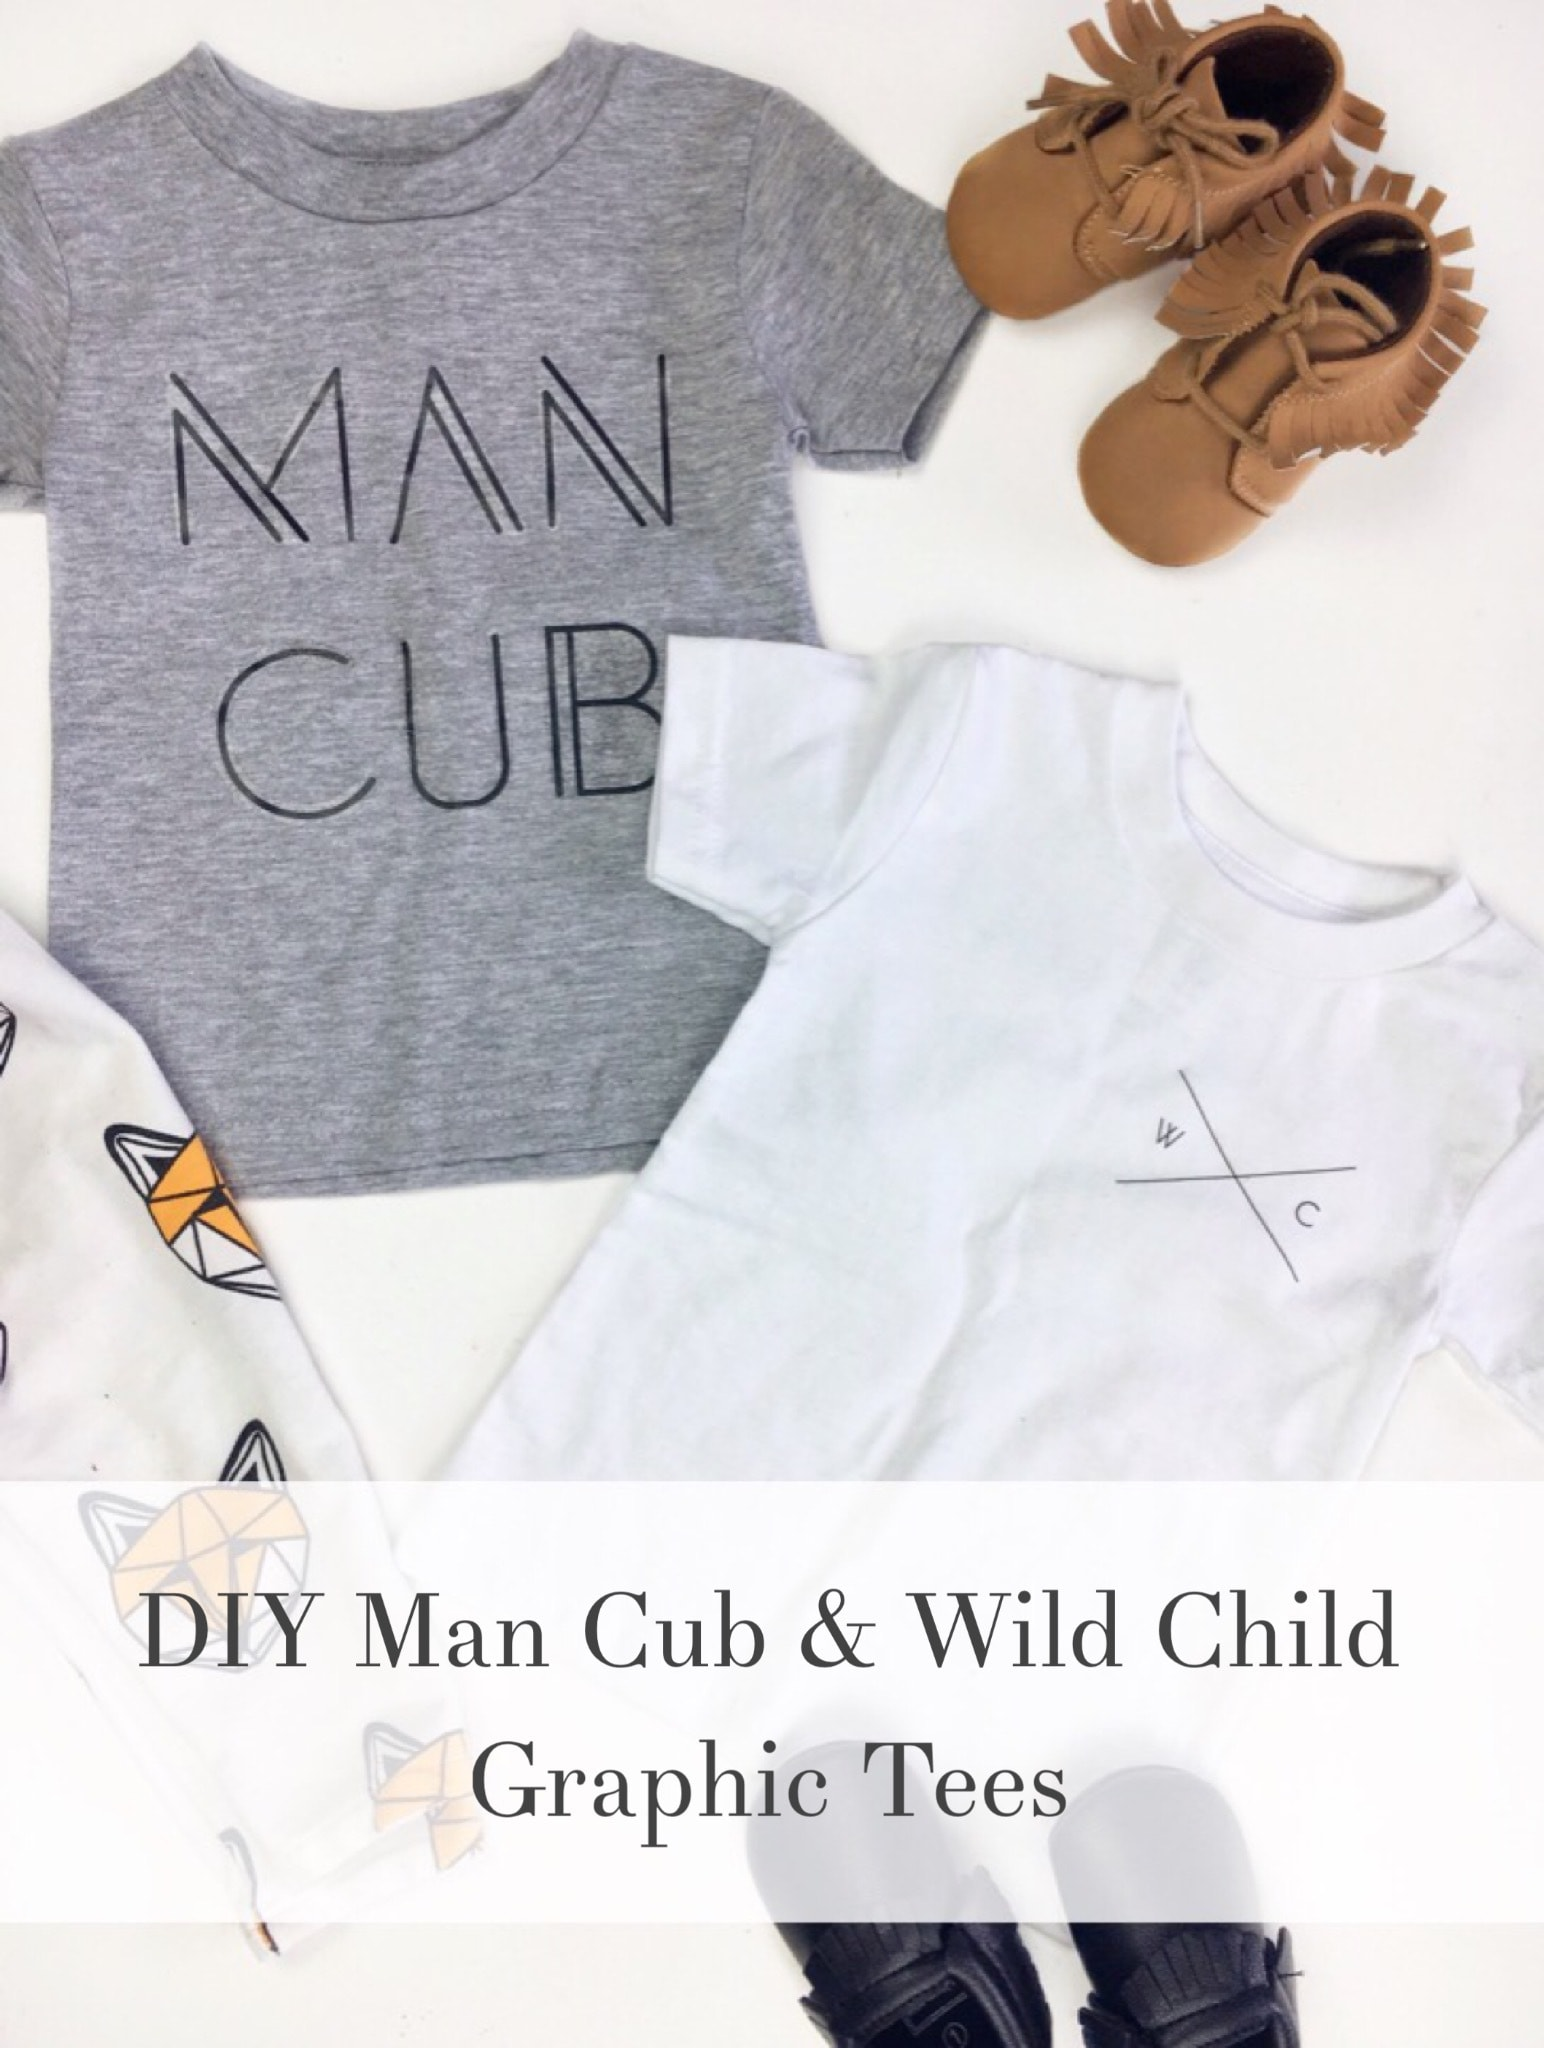 DIY Man Cub & Wild Child Graphic Tees